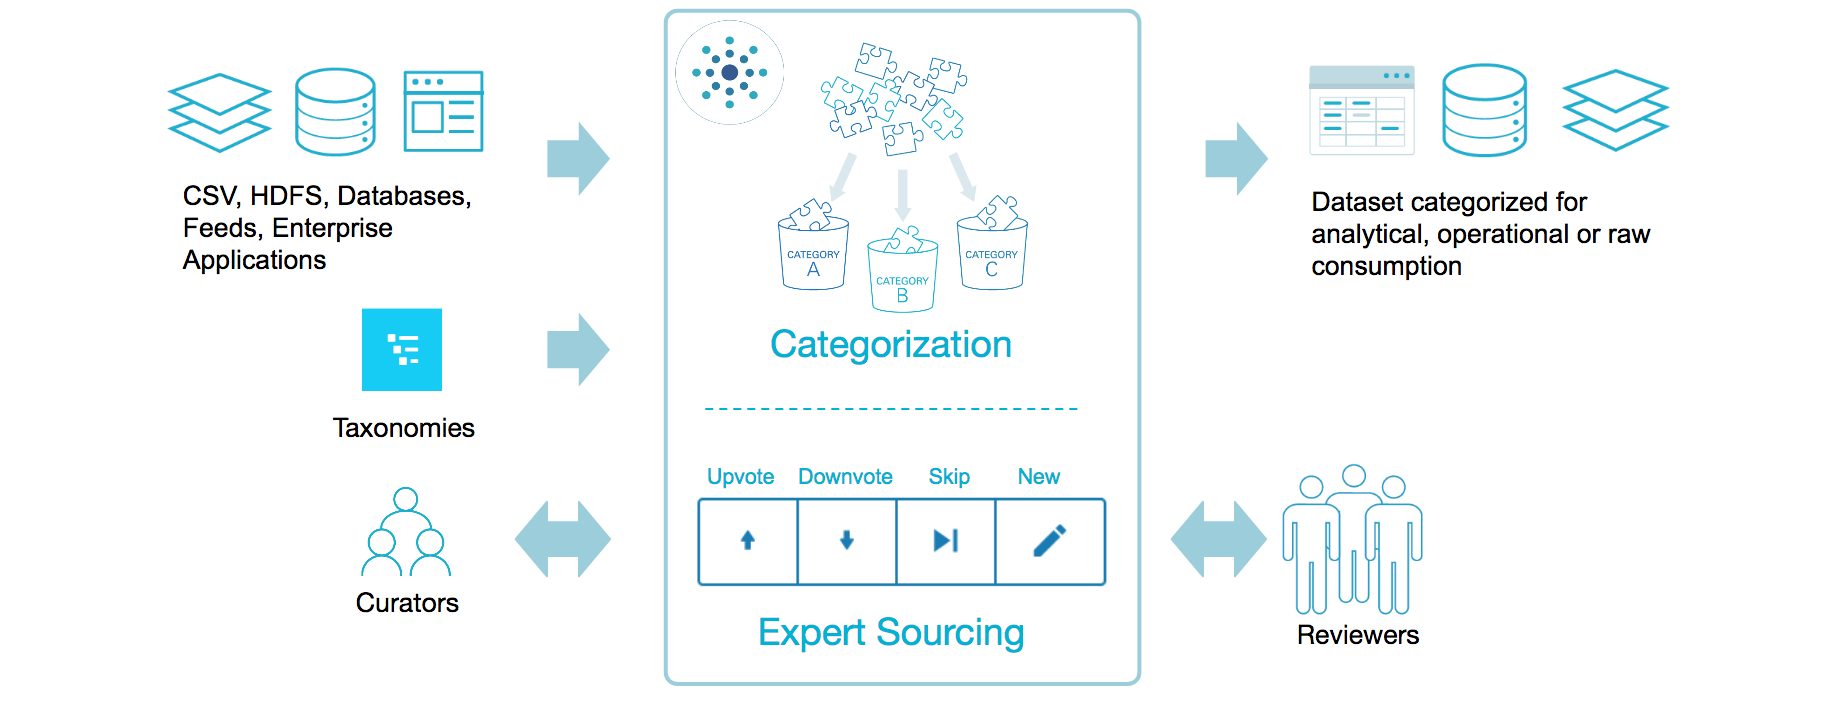 Categorization project workflow